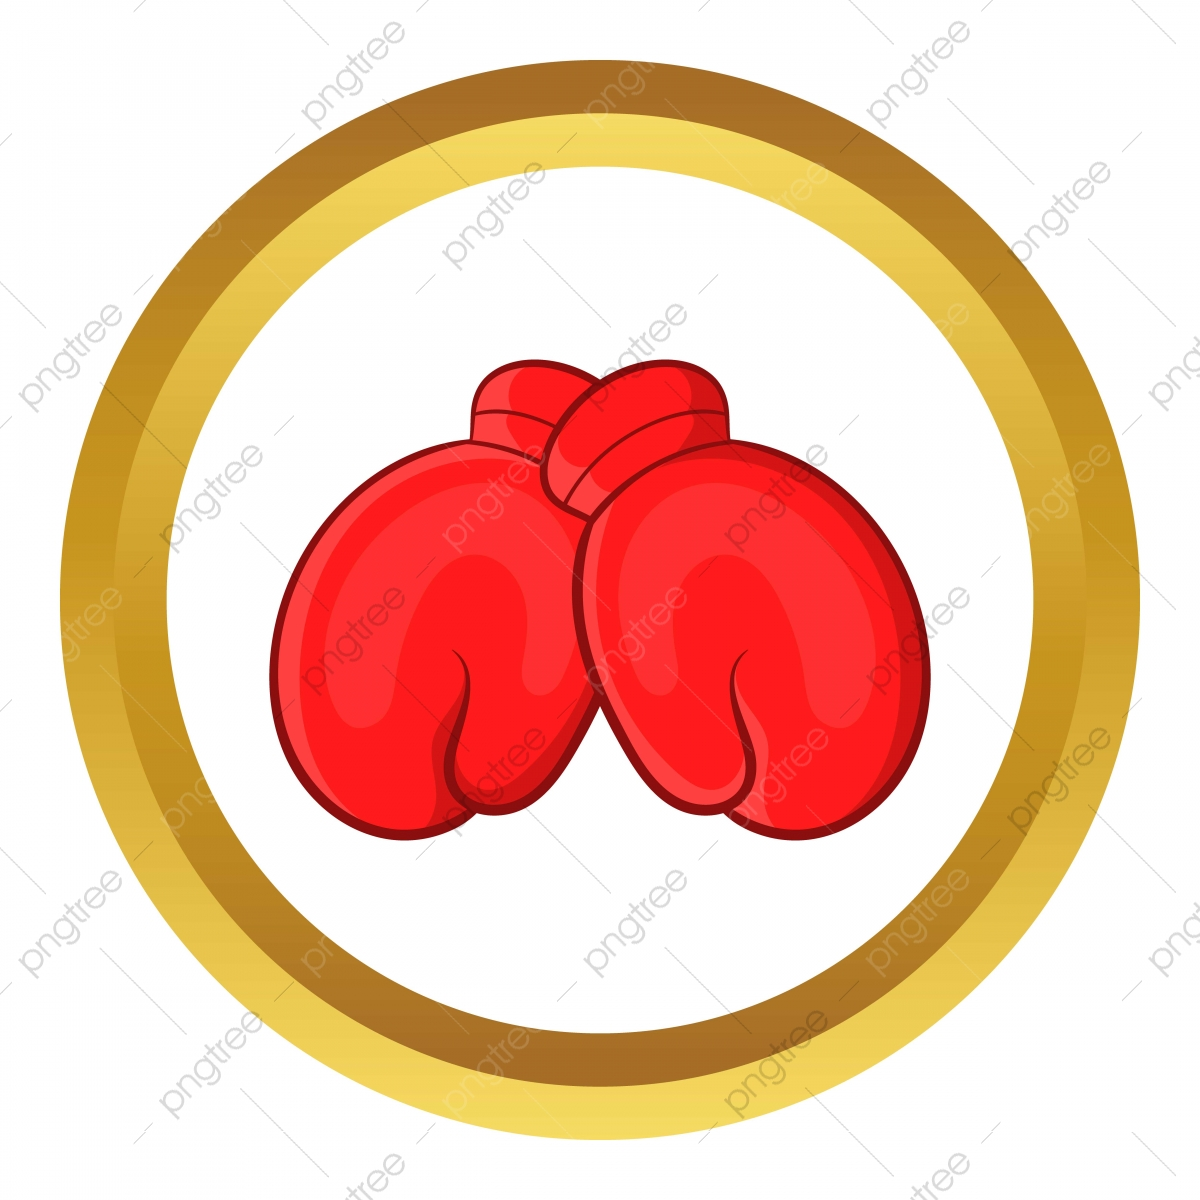 Free PNG Boxing Glove Clip Art Download - PinClipart